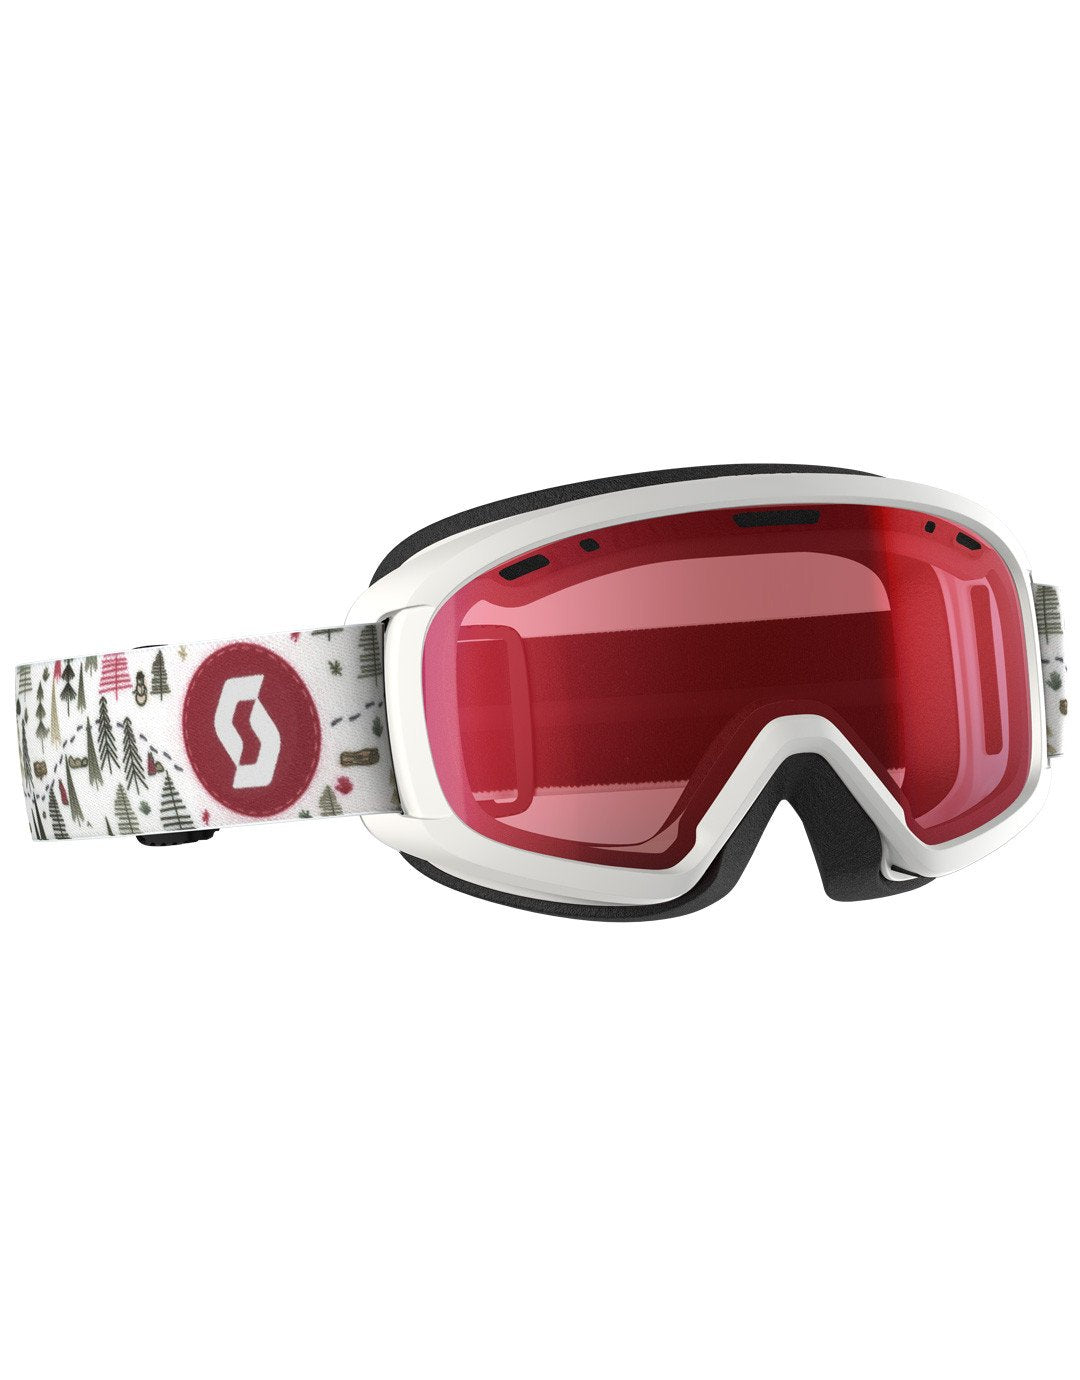 2261078a2d33 Scott Junior Witty Goggle - White Pink with Light Amp Lens ...